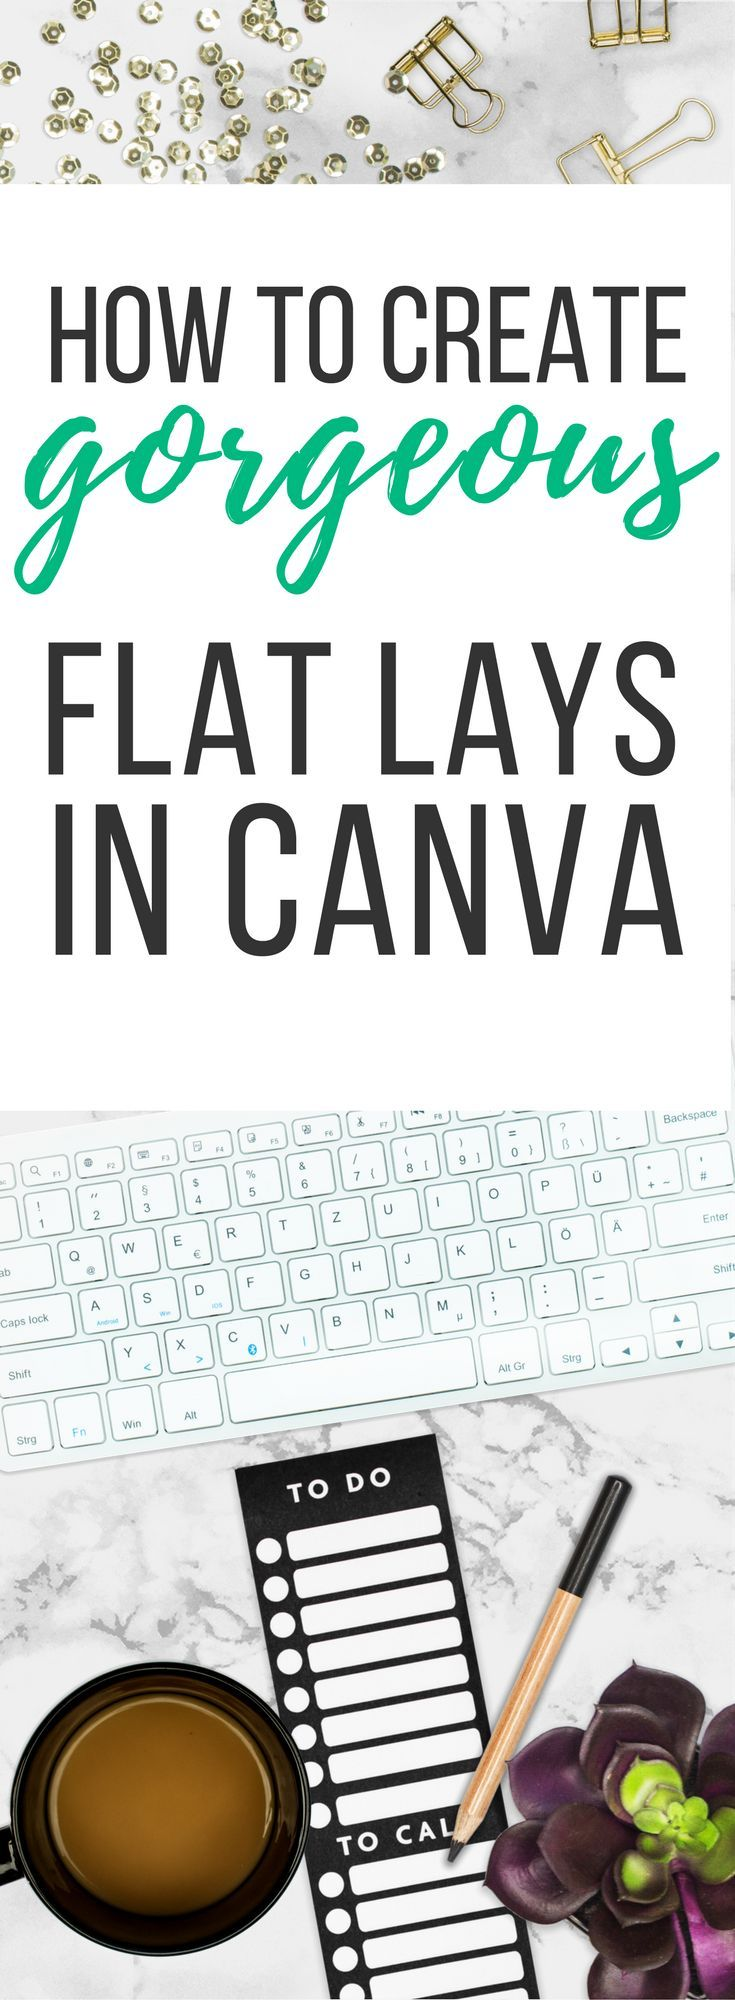 How to Create Flat Lays in Canva, flat lay photography , flatlays instagram, how to take flat lay photos, flatlay photography mockup, scene creator , stock photo scene creator, desk scene creator, styled stock photography flat lay, styled stock photography desktops mockup, social media, flat lay photography, desk work spaces, scene creator mockup for canva, pinterest stock photos